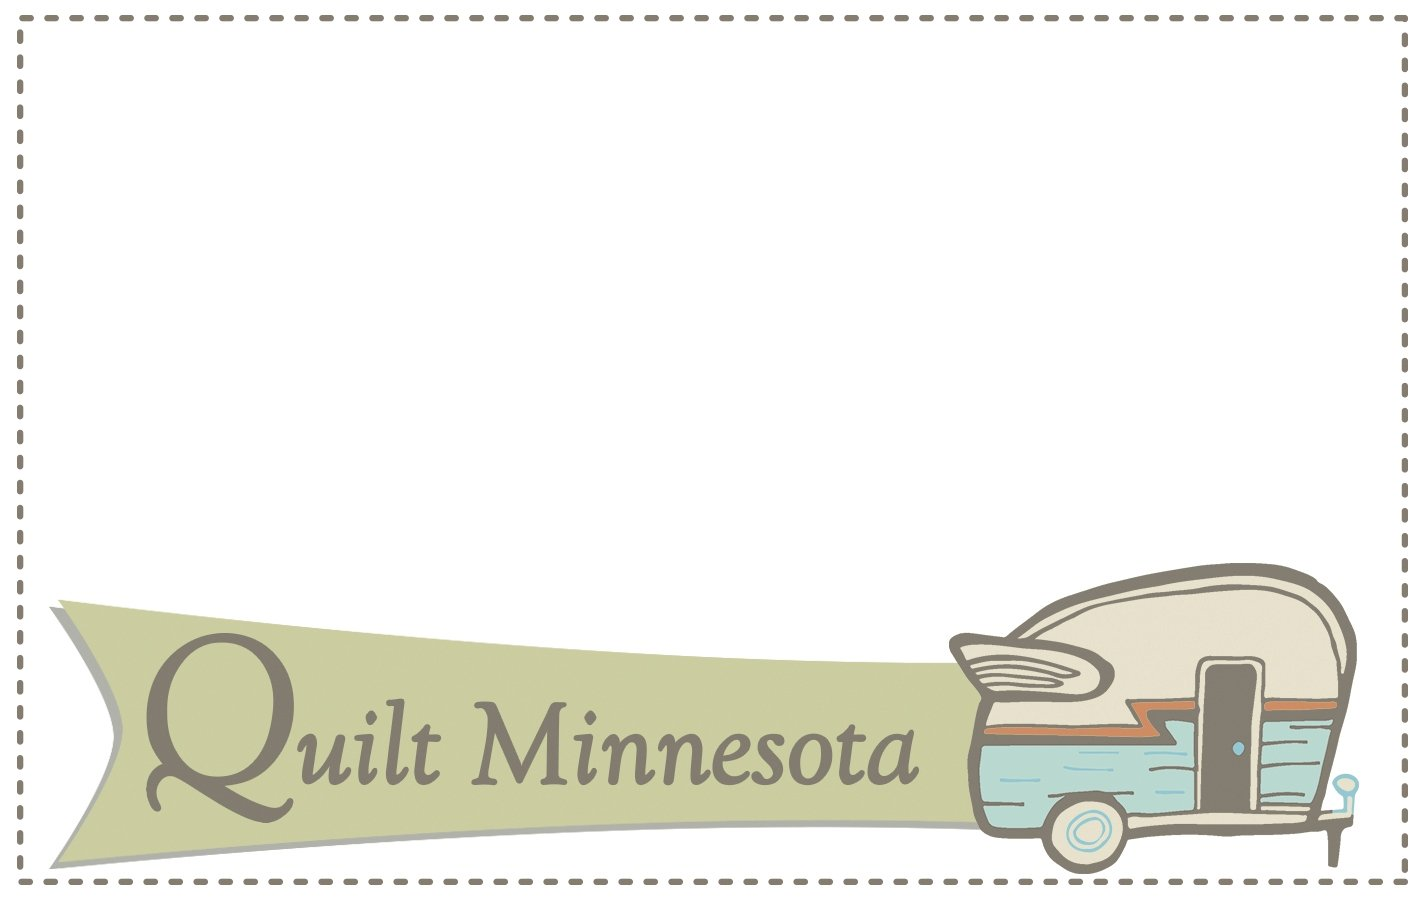 2016 Quilt Label, Camper